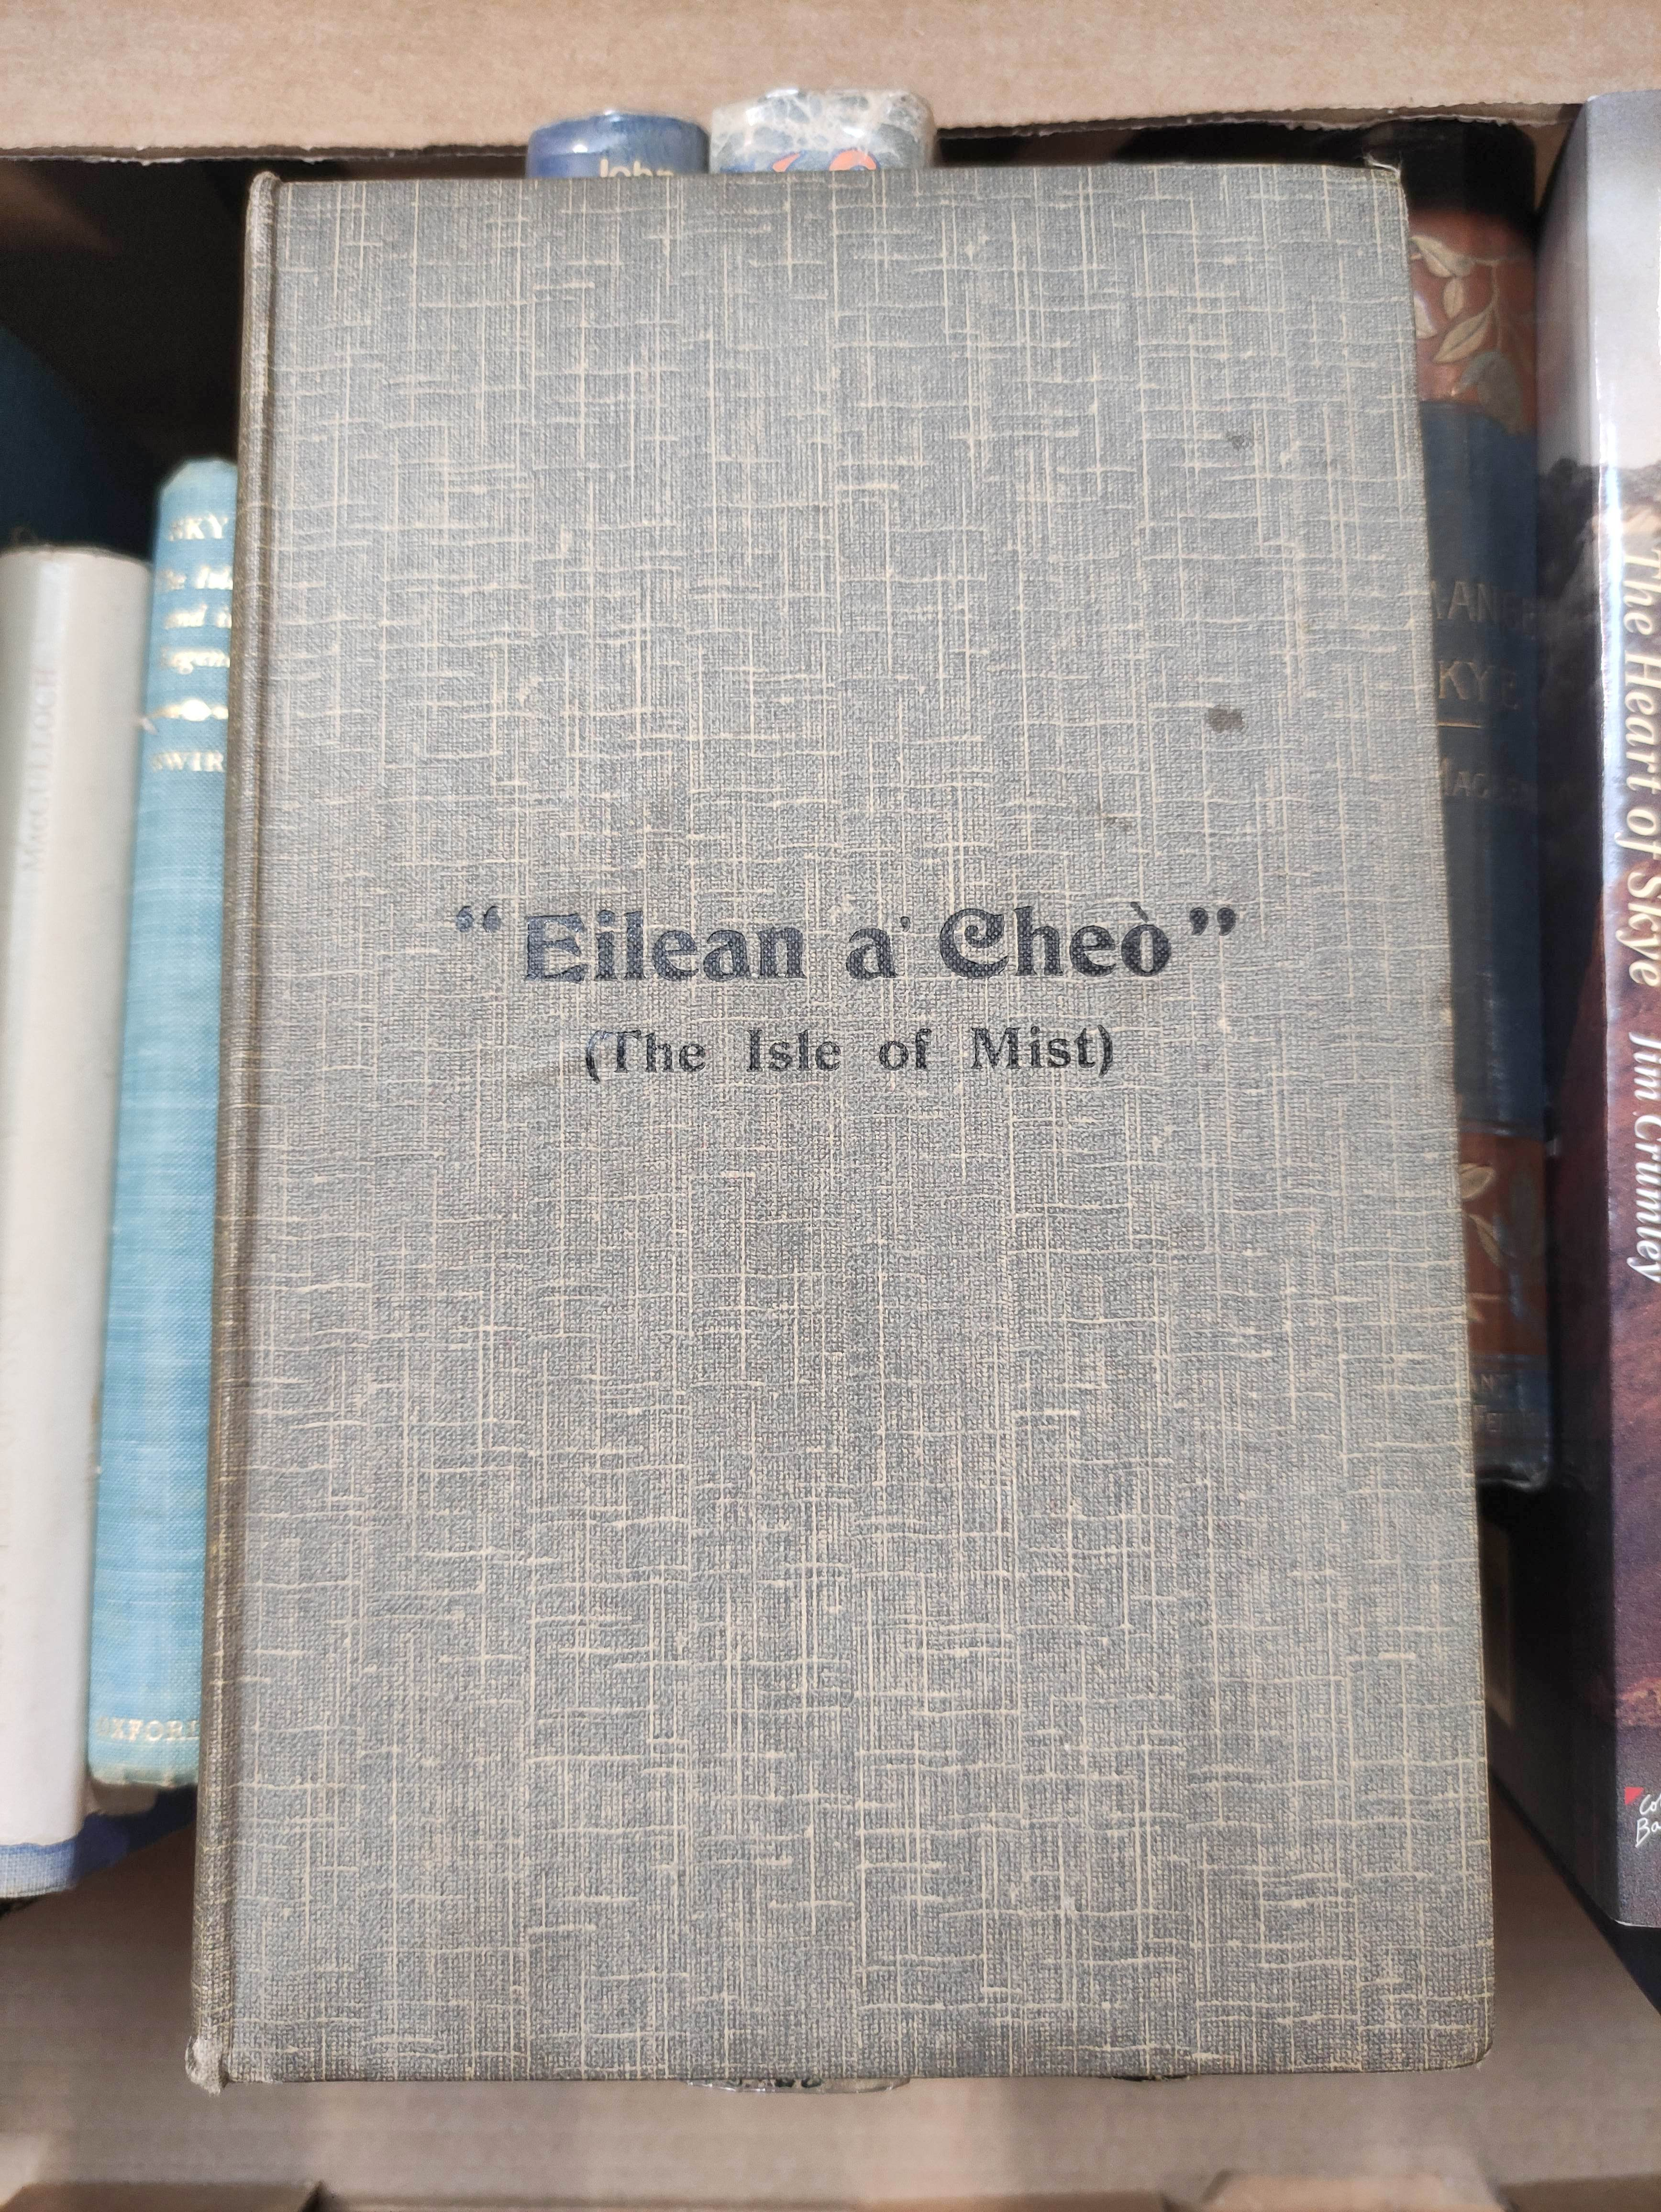 NICOLSON ALEX.History of Skye, A Record of the Families, the Social Conditions & the Literature of - Image 2 of 4